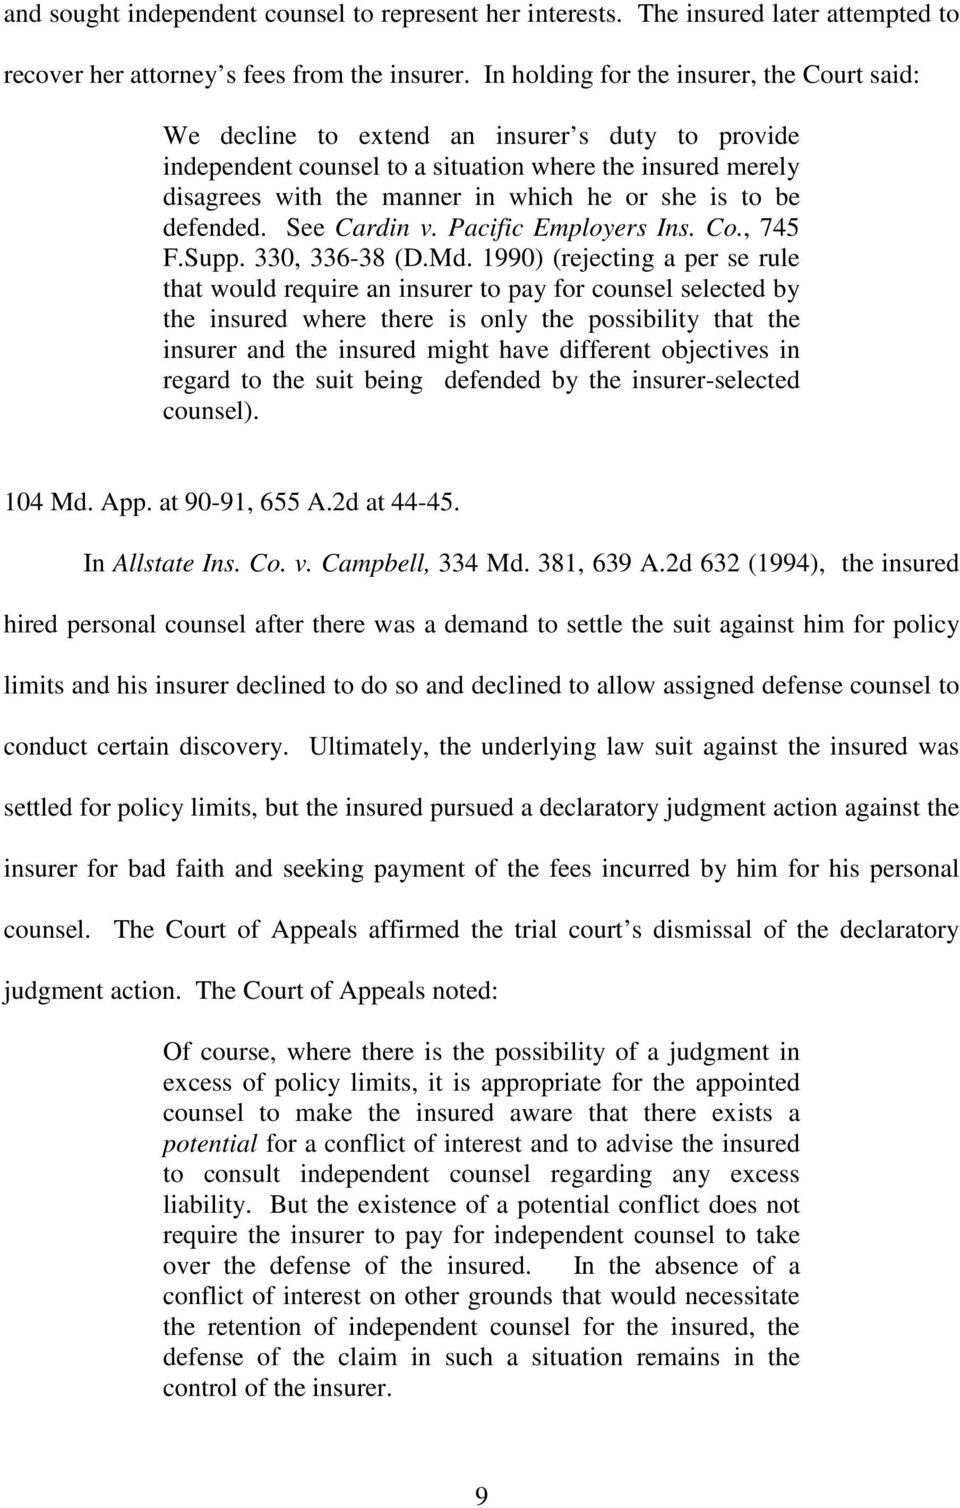 is to be defended. See Cardin v. Pacific Employers Ins. Co., 745 F.Supp. 330, 336-38 (D.Md.